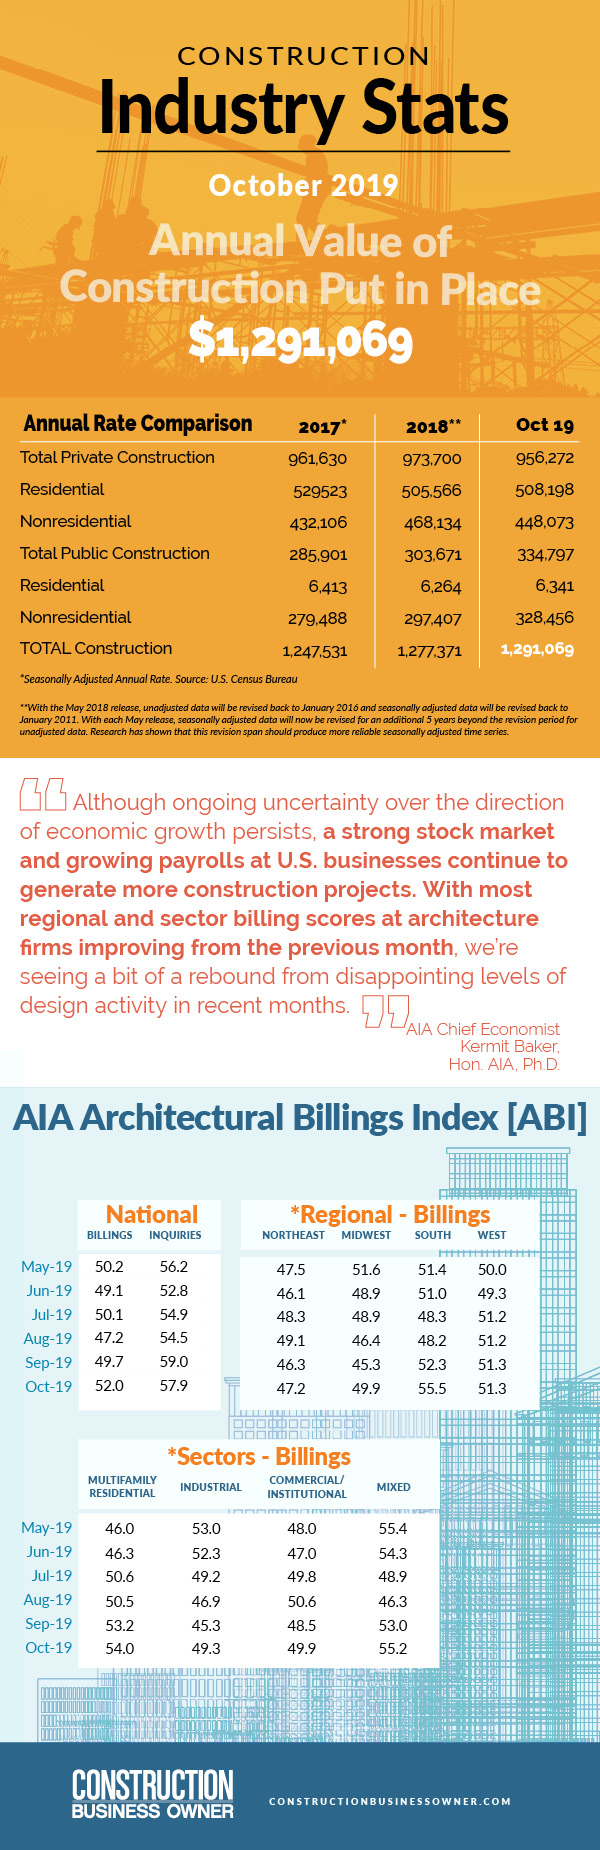 January 2020 Construction Industry Stats